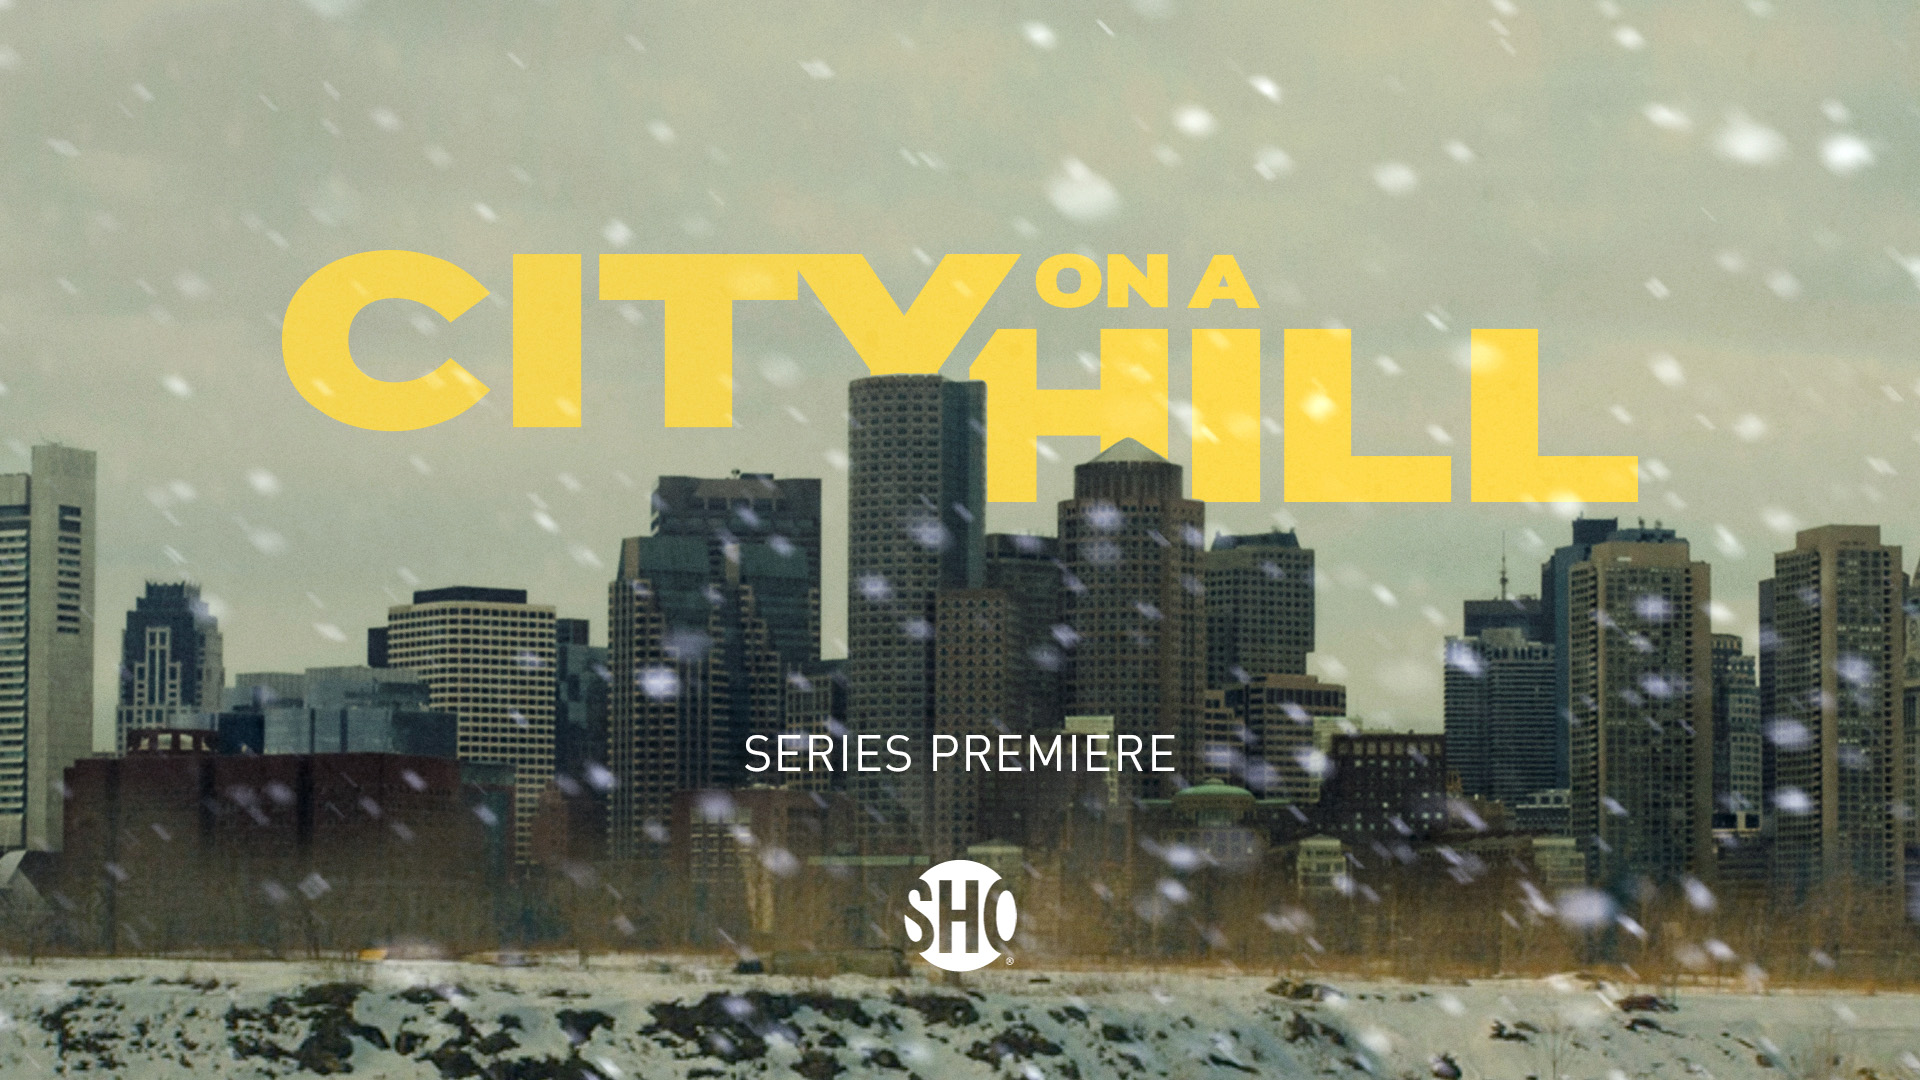 190207_CityOnAHill_Packaging_Snow_Endpage_01.jpg